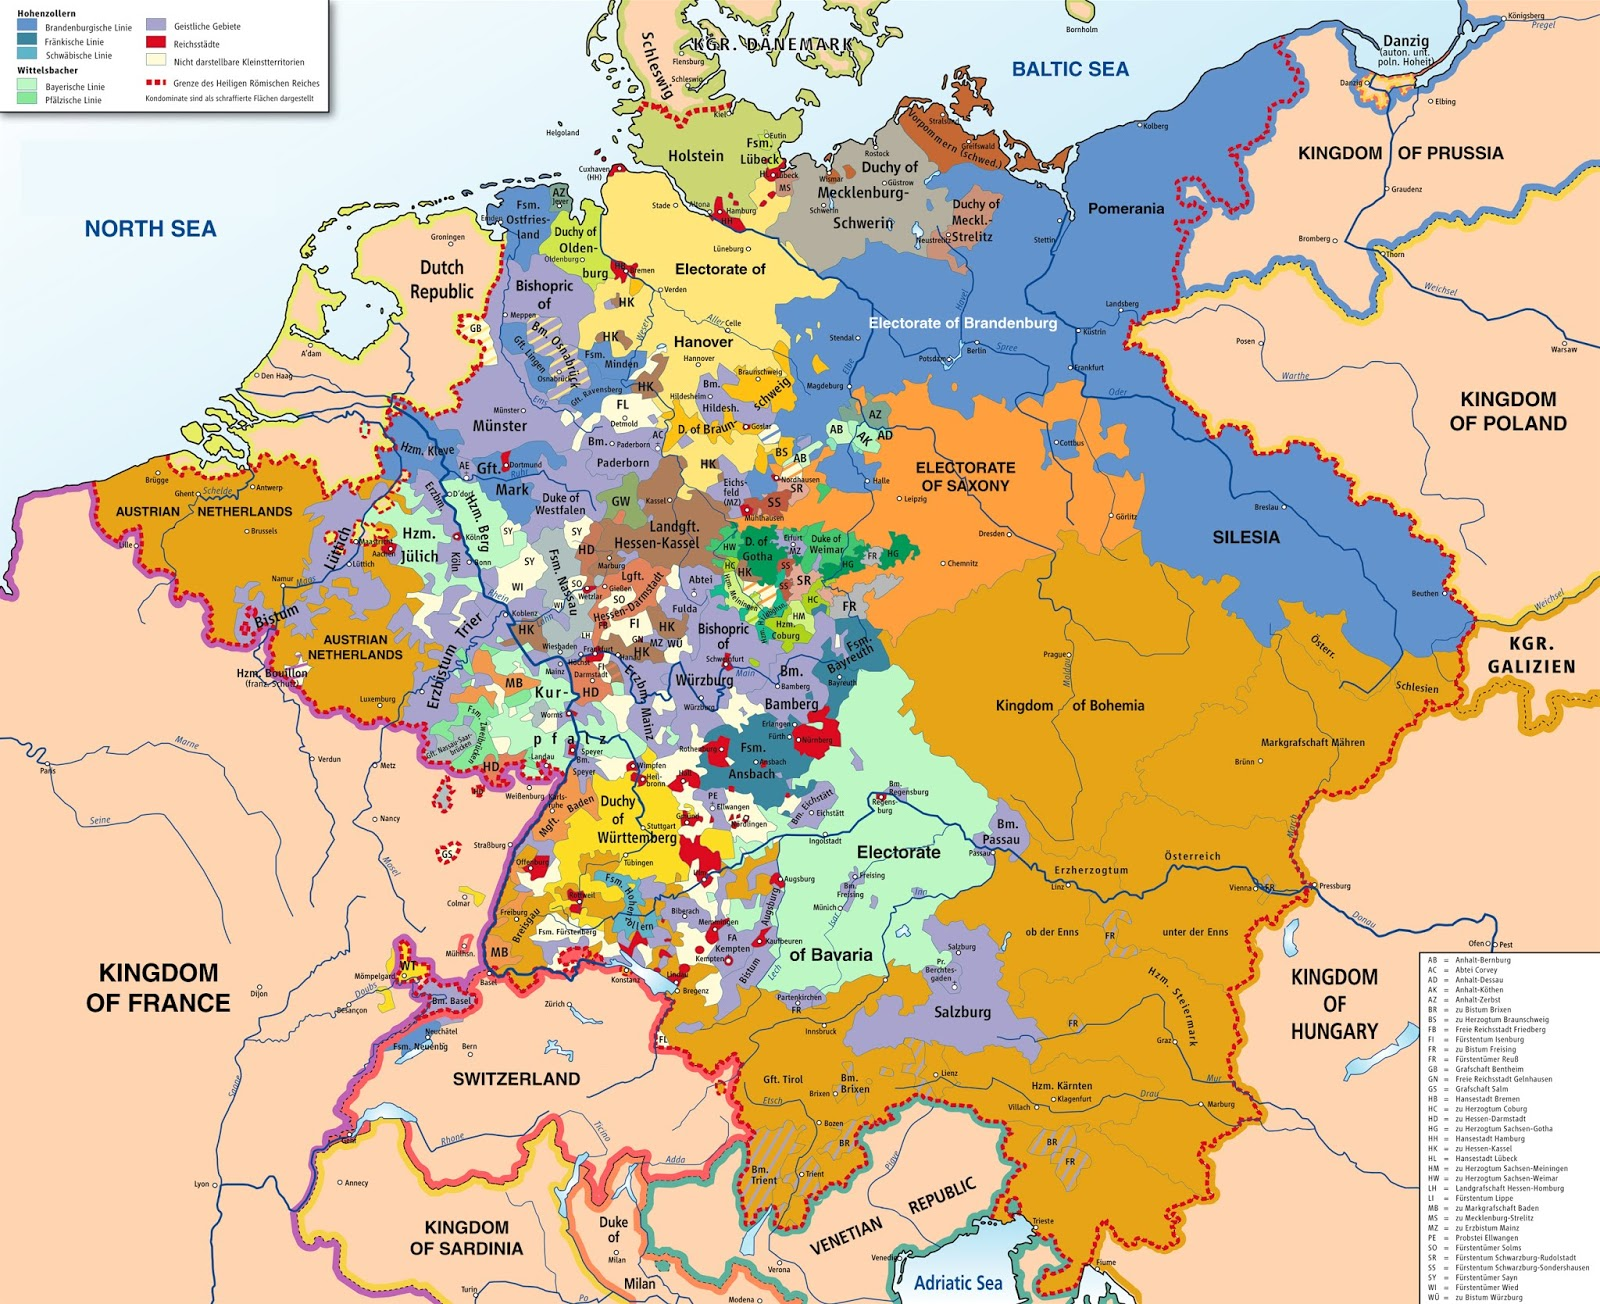 territories making up the holy roman empire in 1789 wikipedia commons